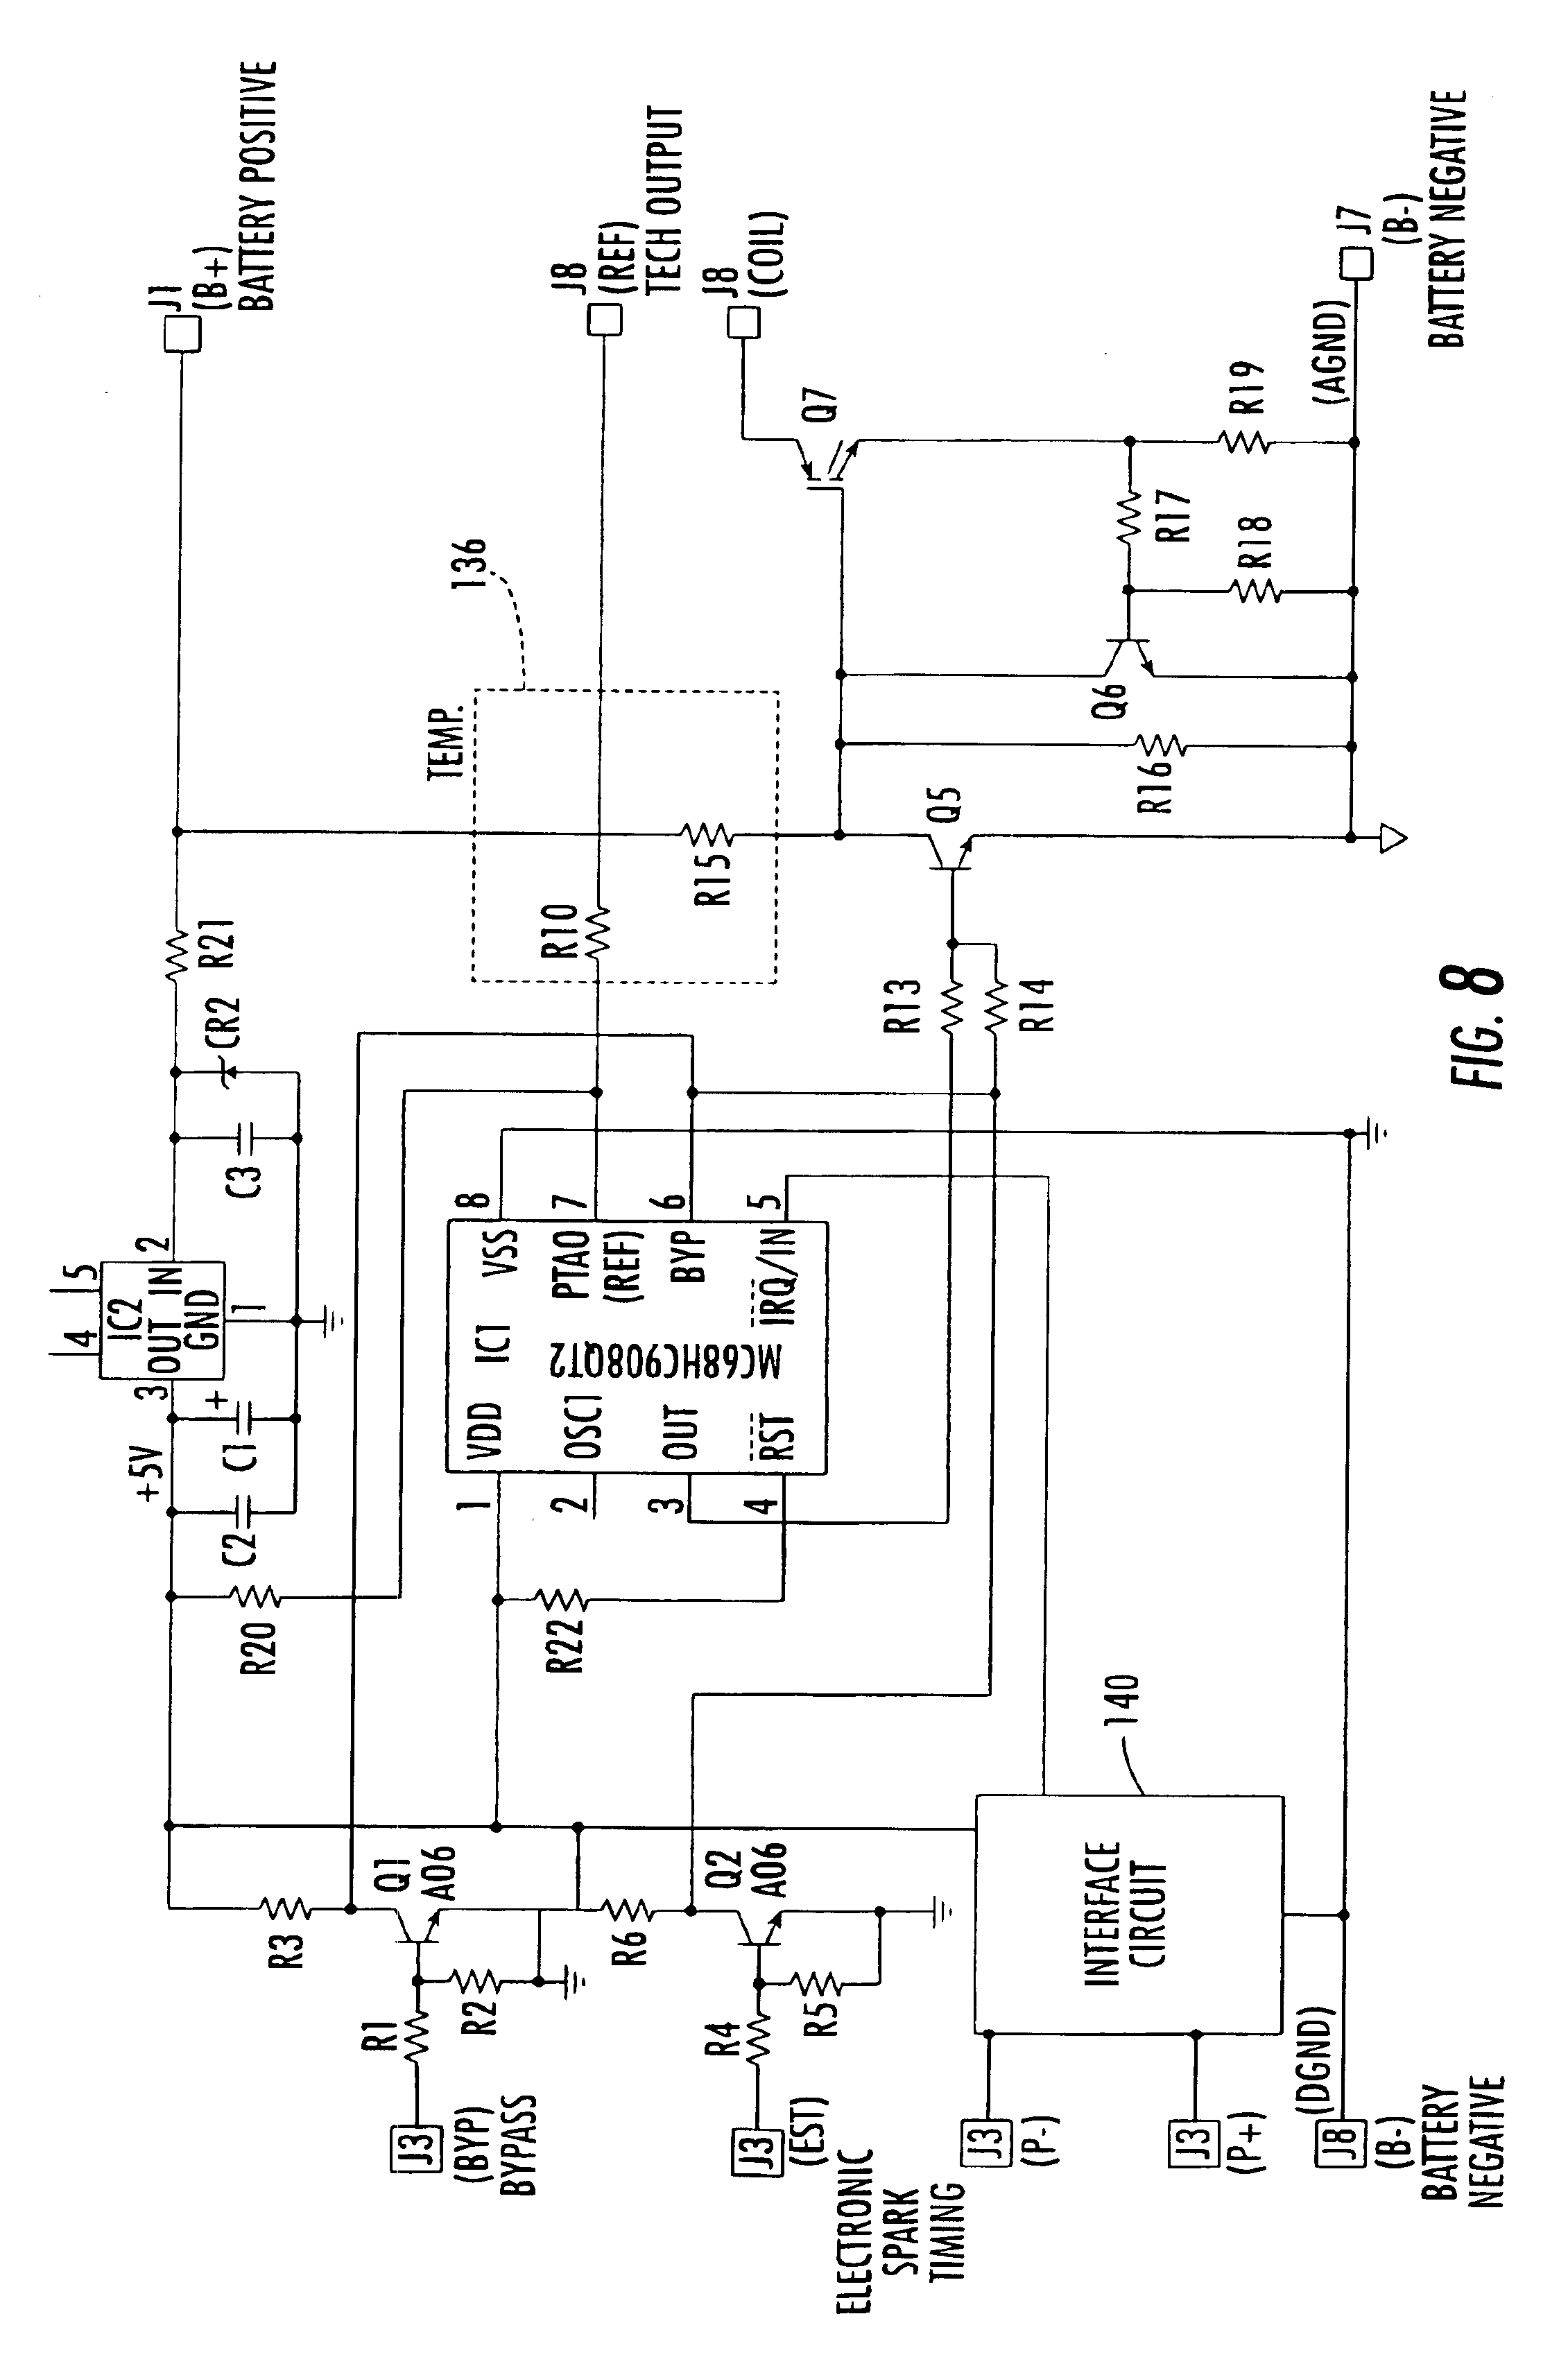 1989 Ford Ignition Module Wiring Diagram